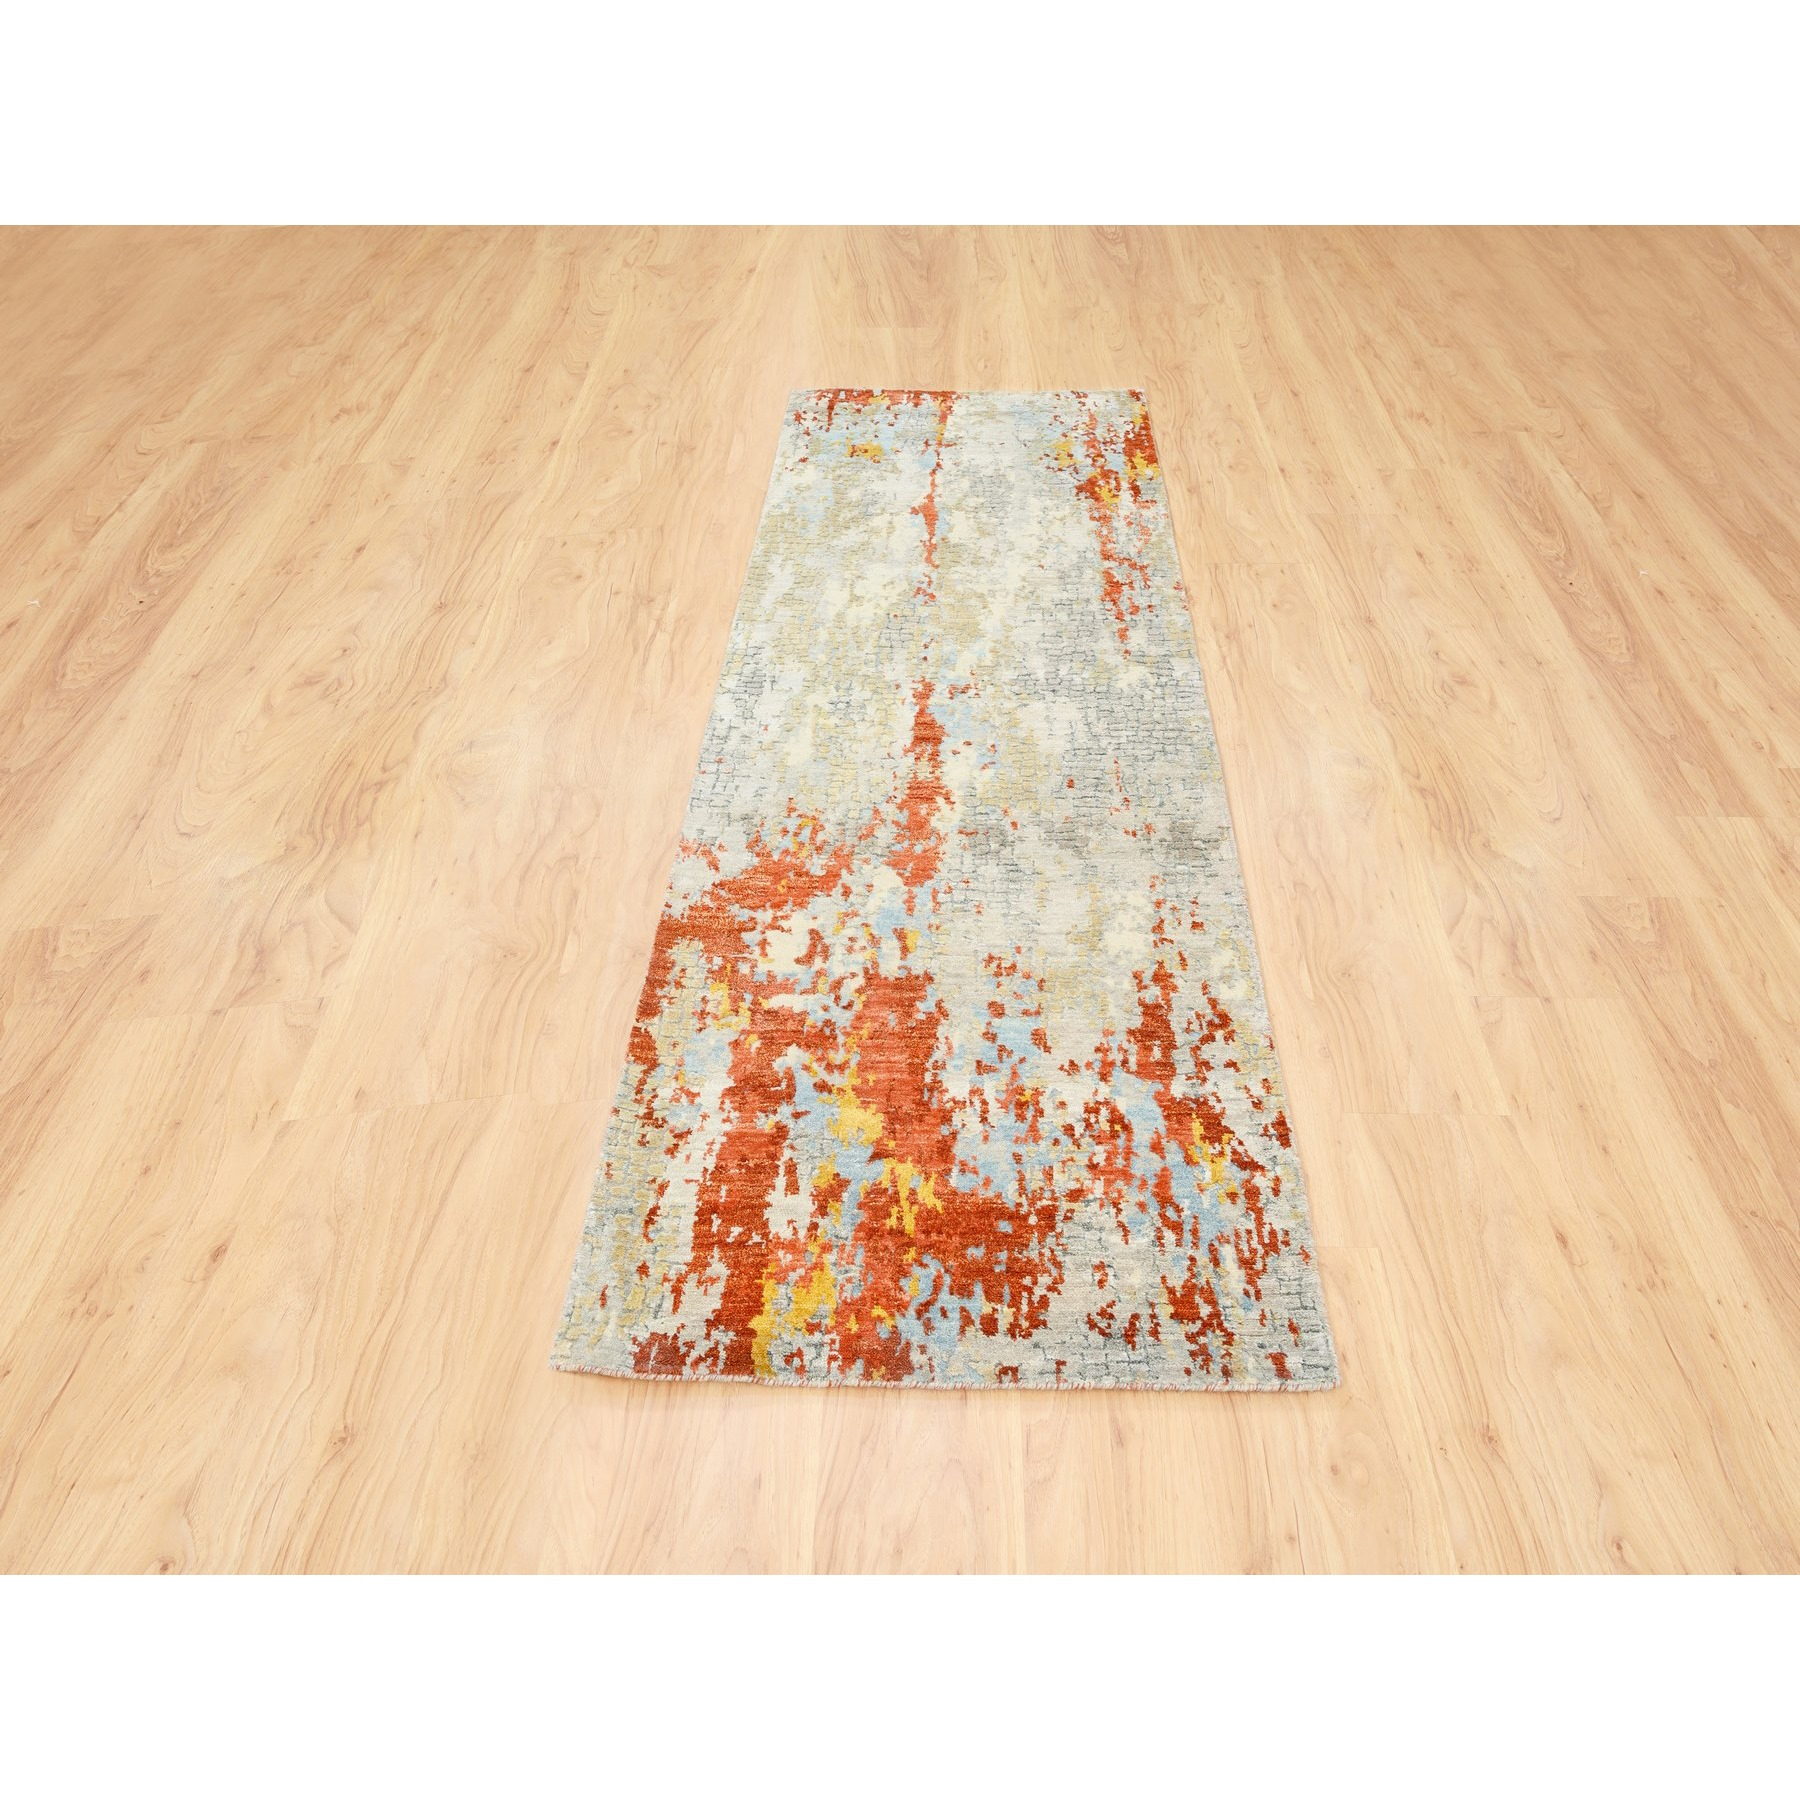 """2'7""""x7'10"""" Wool and Silk Abstract with Fire Mosaic Hand Knotted Runner Rug"""